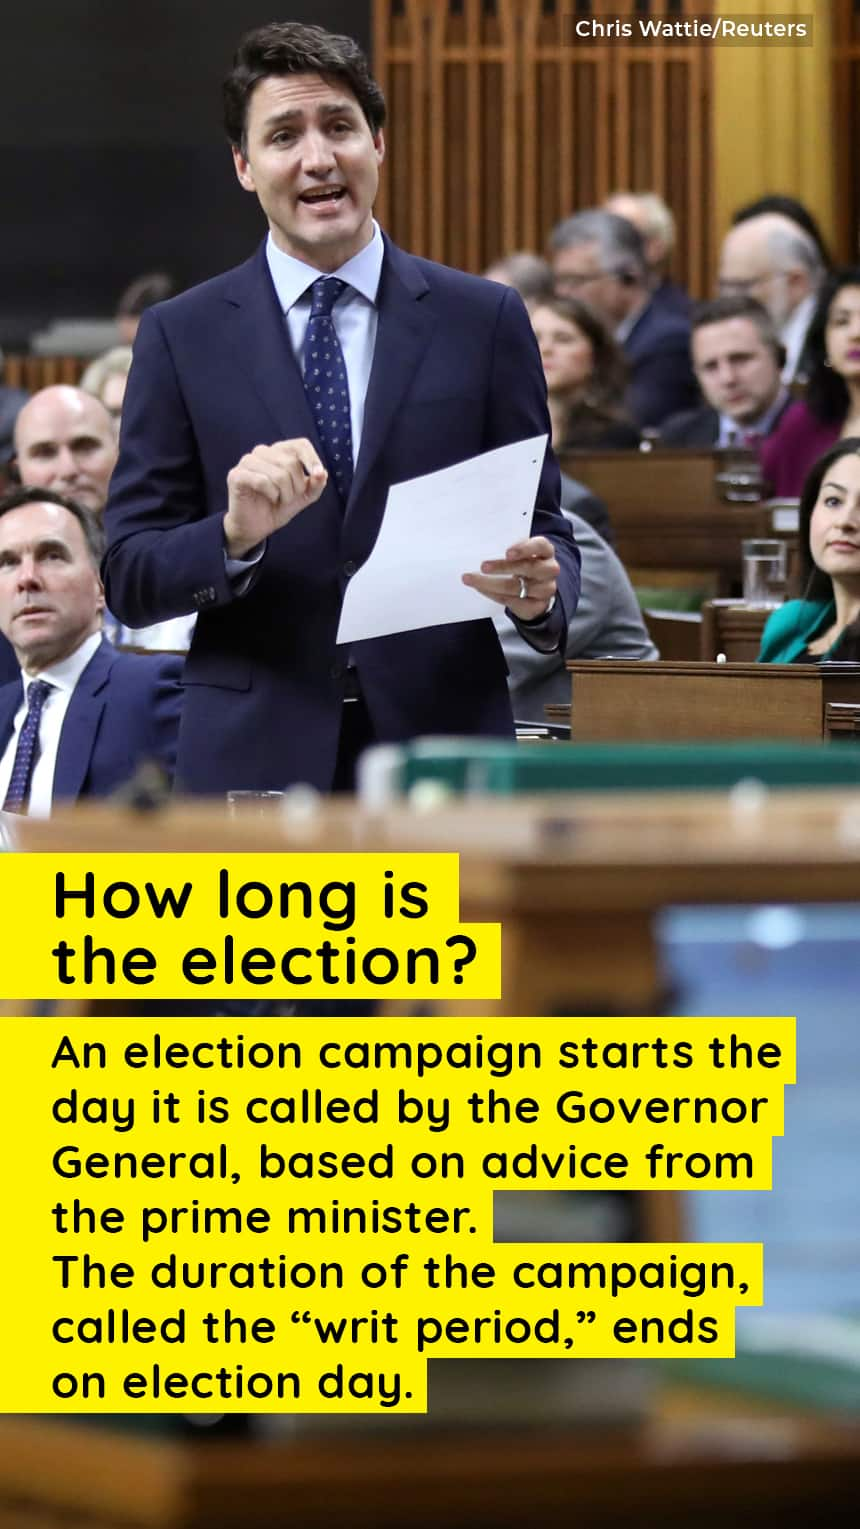 """An image of Justin Trudeau with text that says, How long is the election? An election campaign starts the day it is called by the Governor General, based on advice from the prime minister. The duration of this campaign, called the """"writ period,""""ends on election day."""